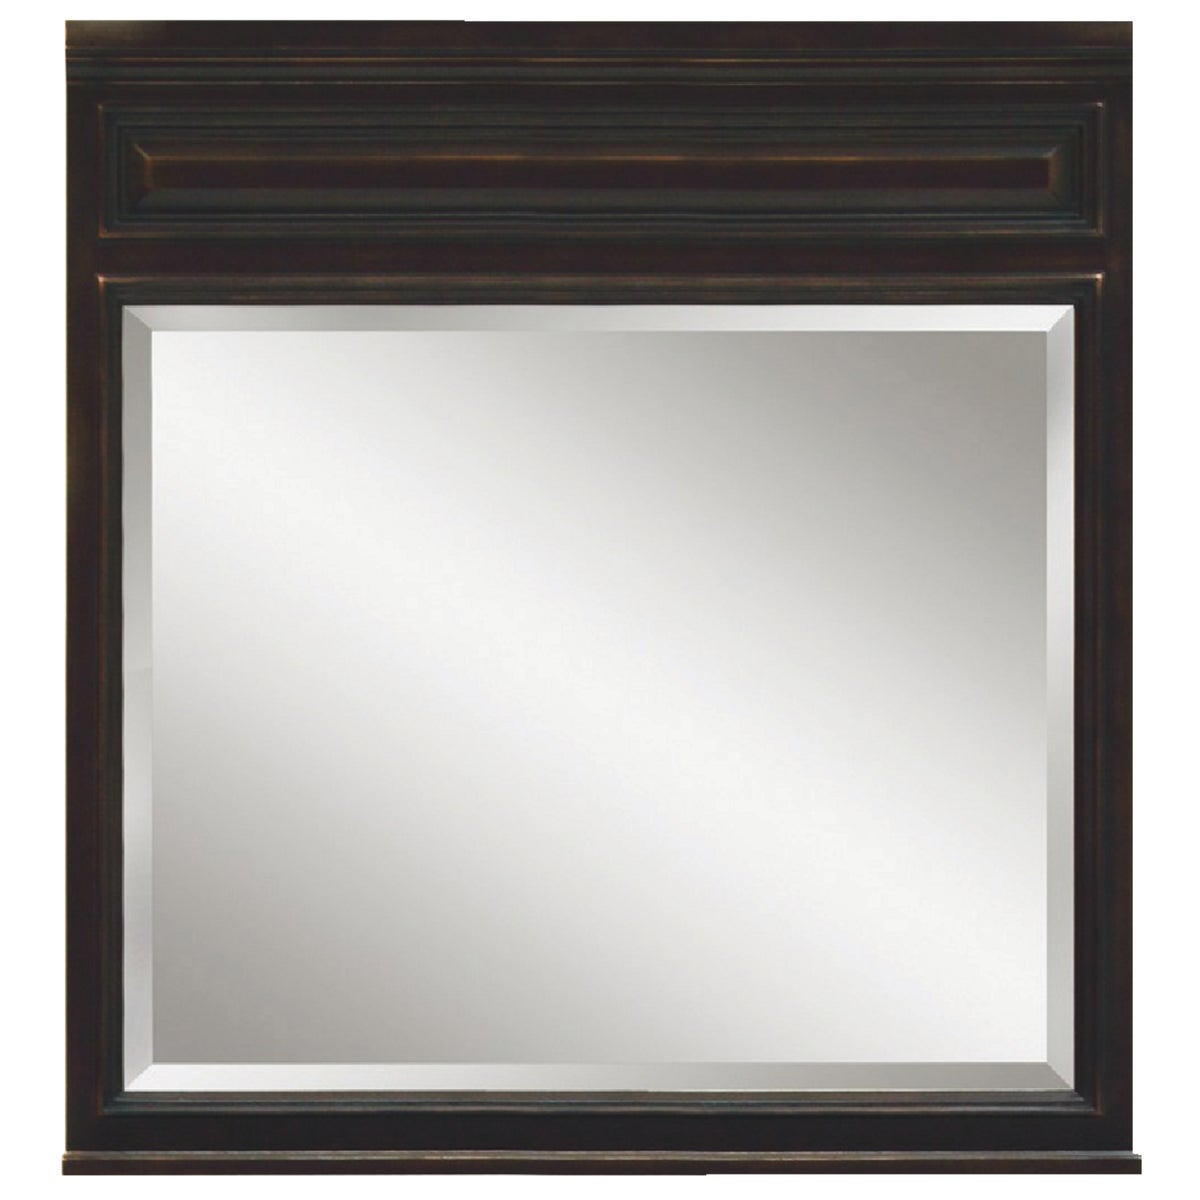 BH 36X38 MIRROR - BH3638MR by Sunnywood Products